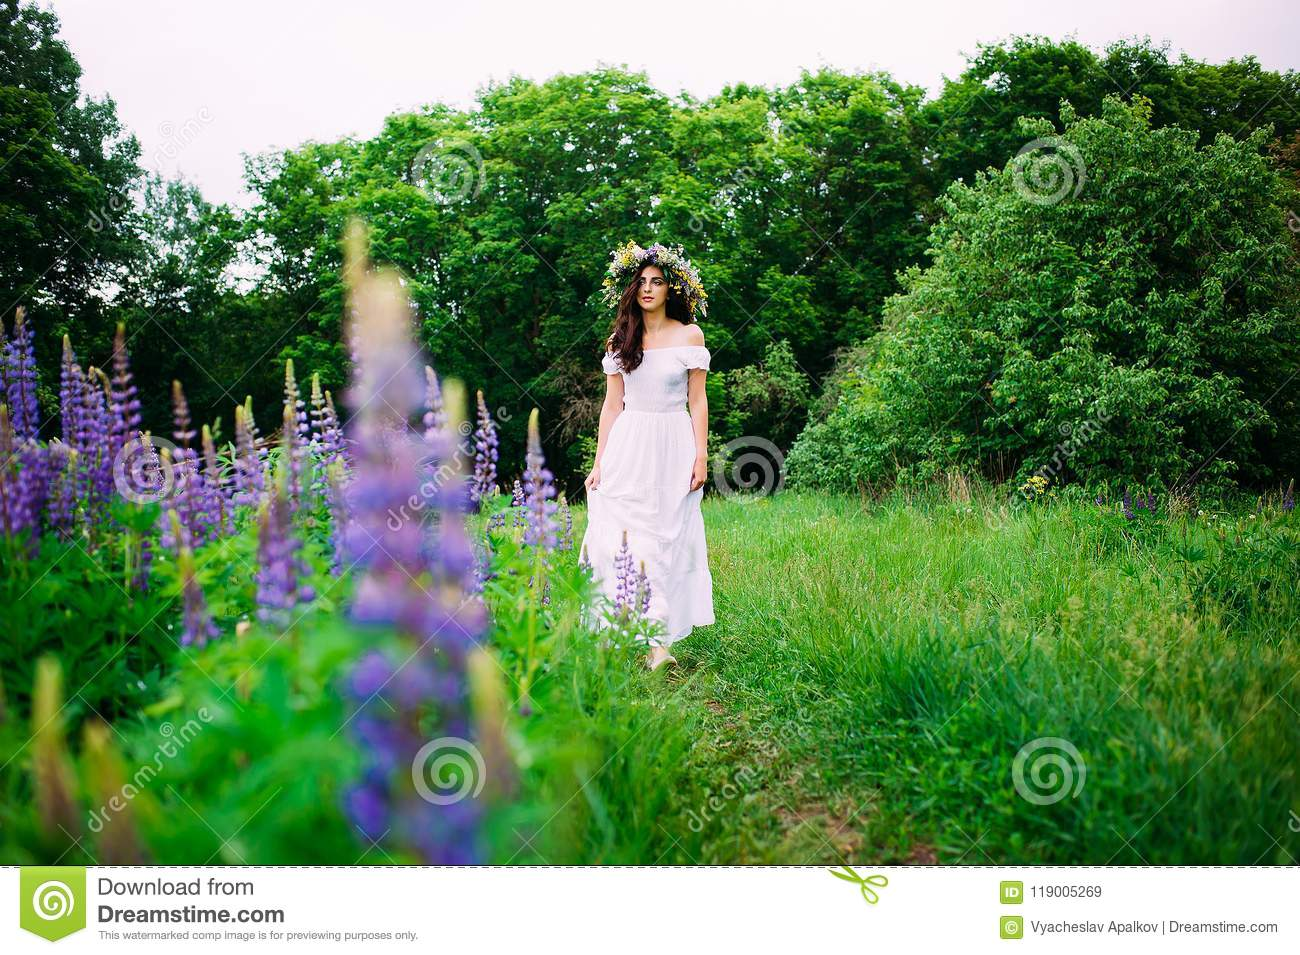 Girl with a wreath of wildflowers